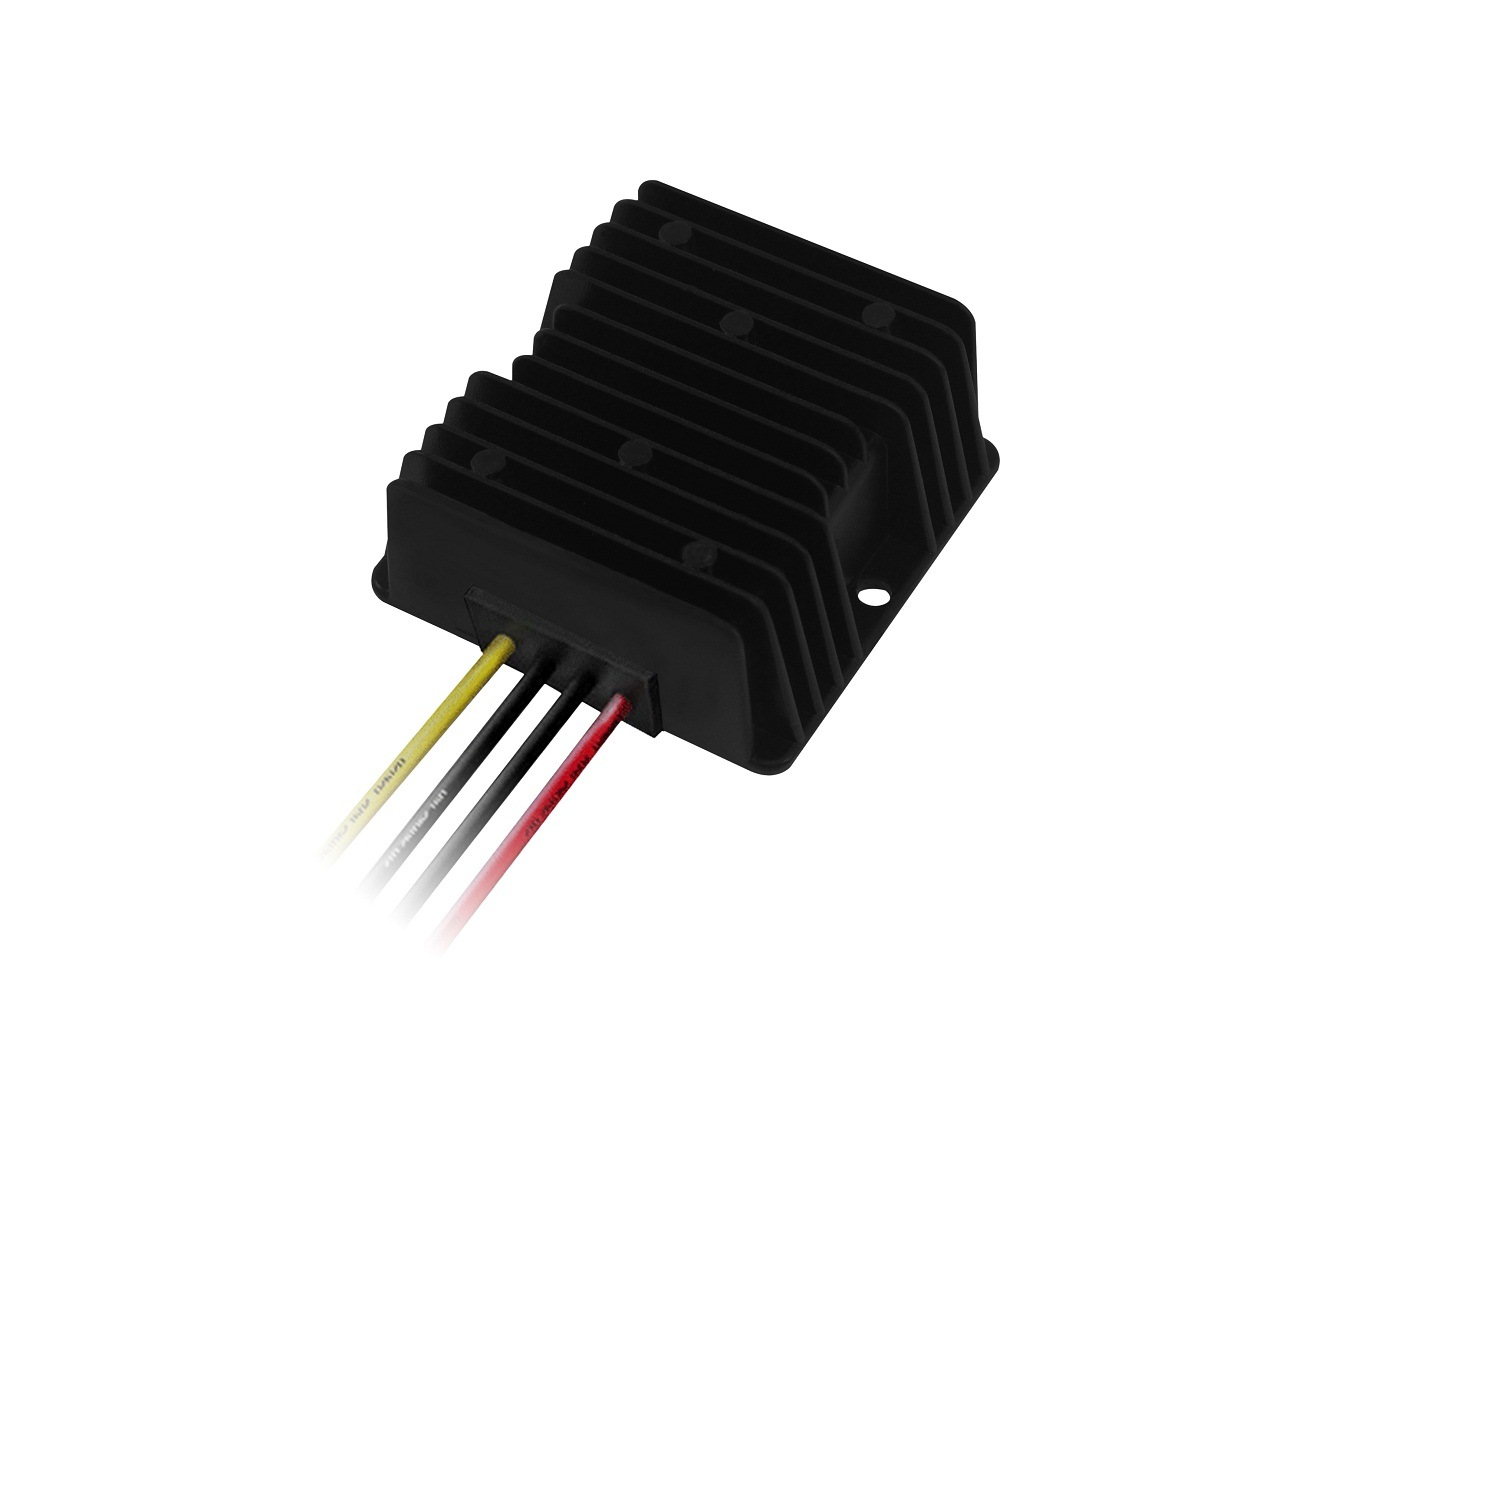 Waterproof DC-DC 24V to 48V 5A 240W Boost Power Converter